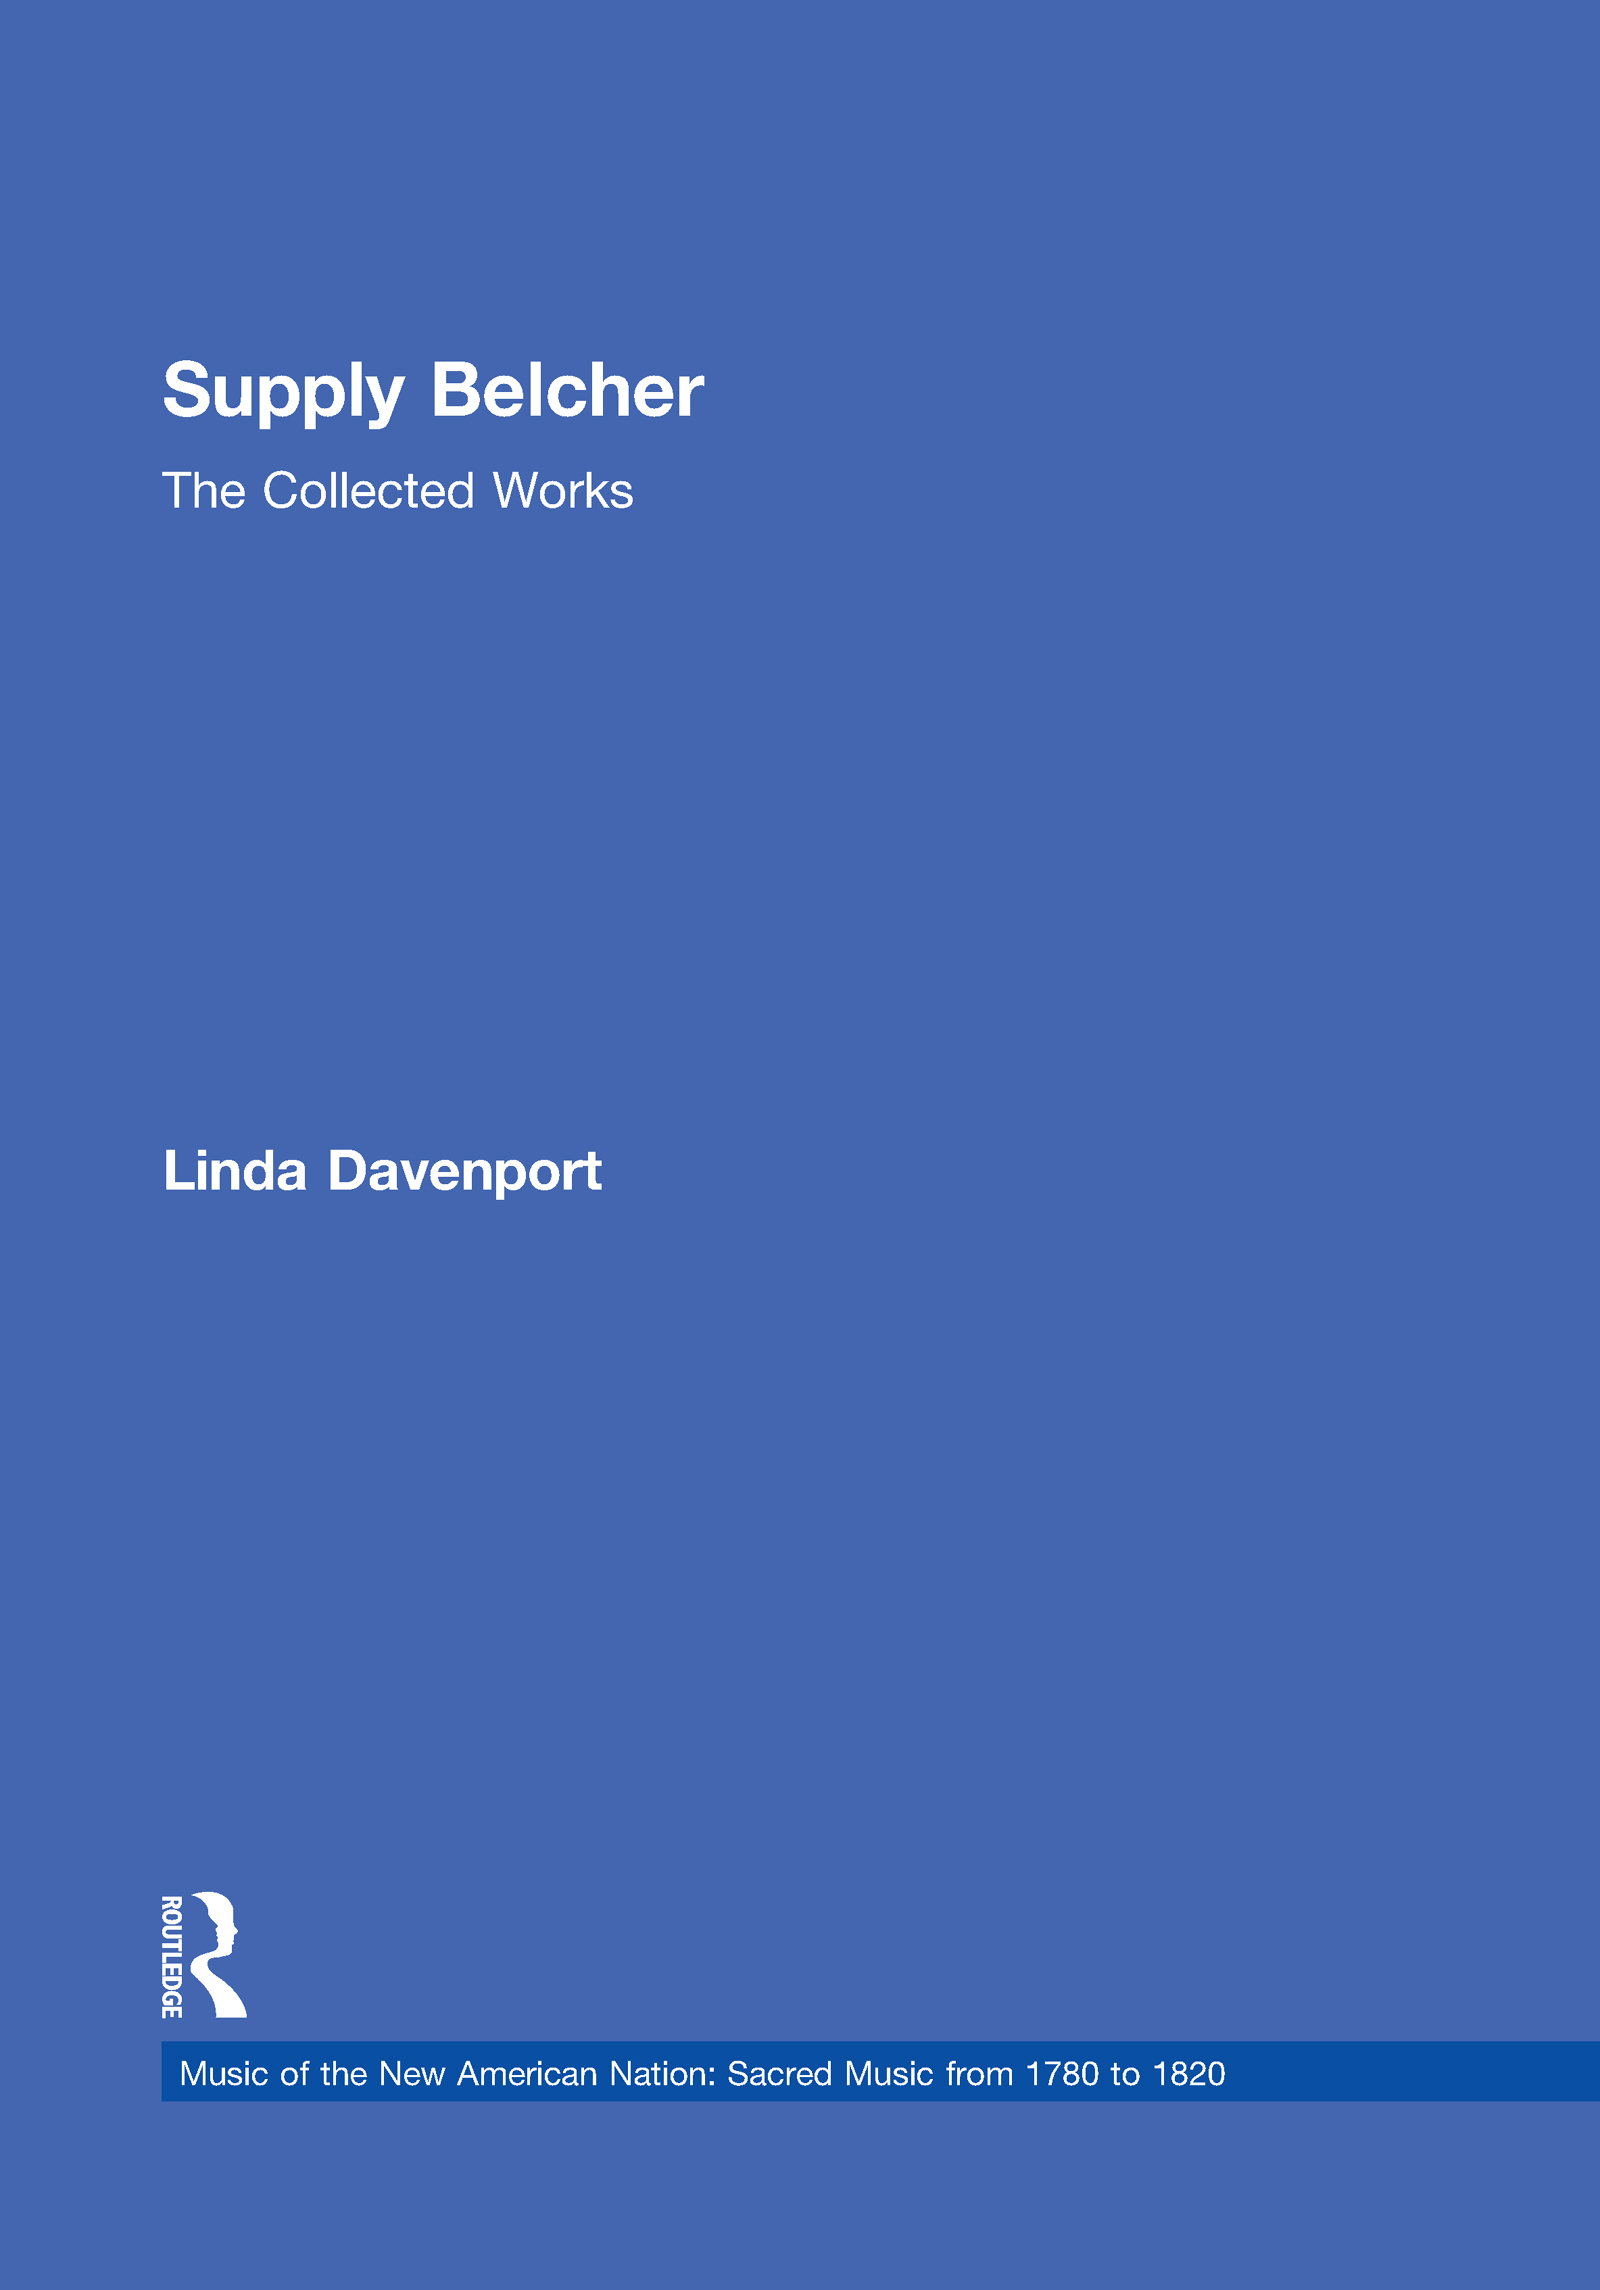 Supply Belcher: The Collected Works (e-Book) book cover